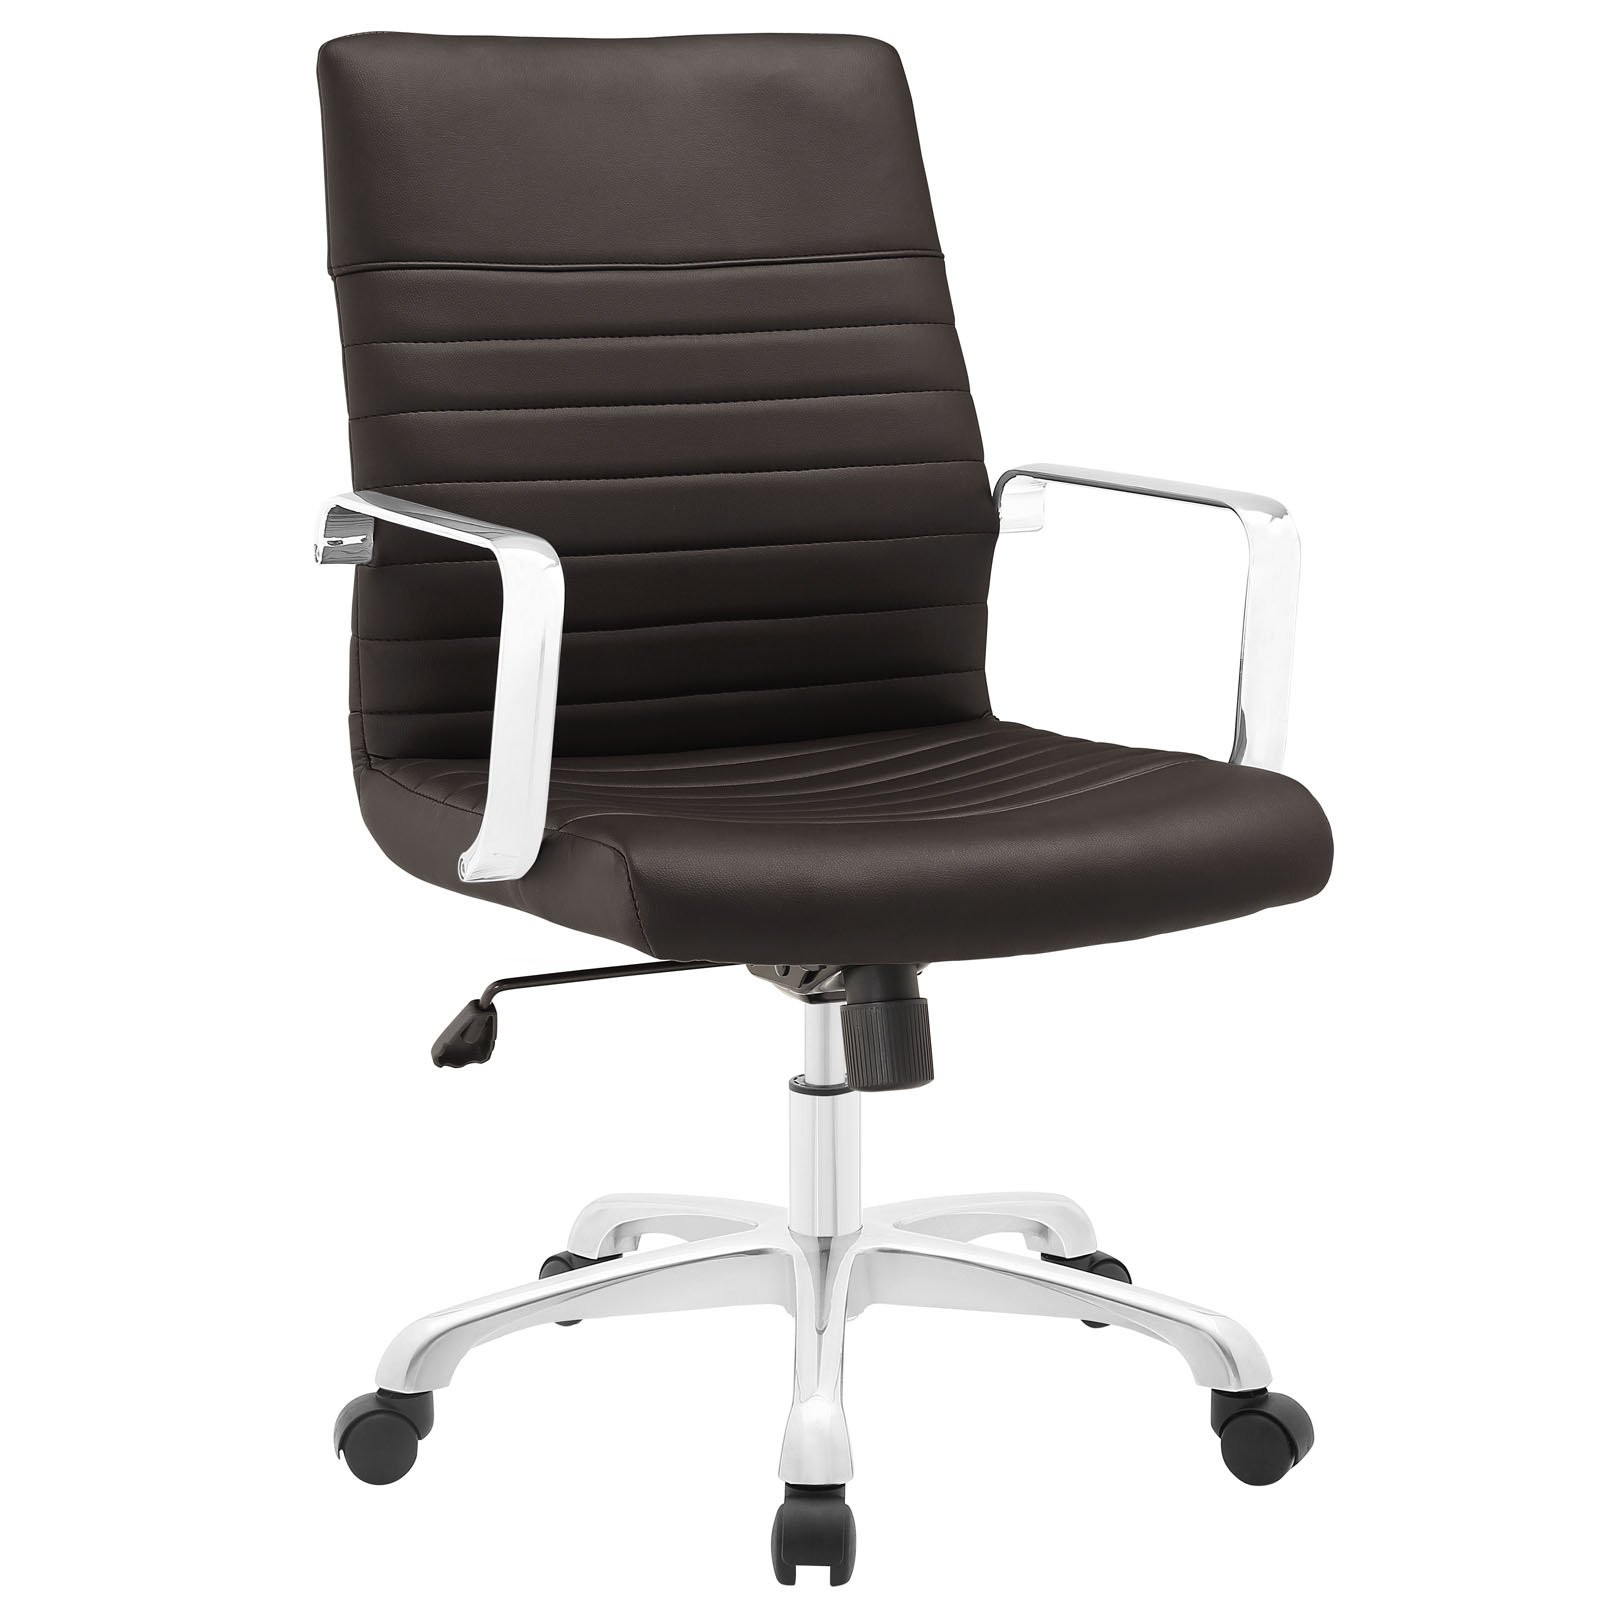 Modway Finesse Ribbed Faux Leather Mid Back Office Chair in Brown by Modway